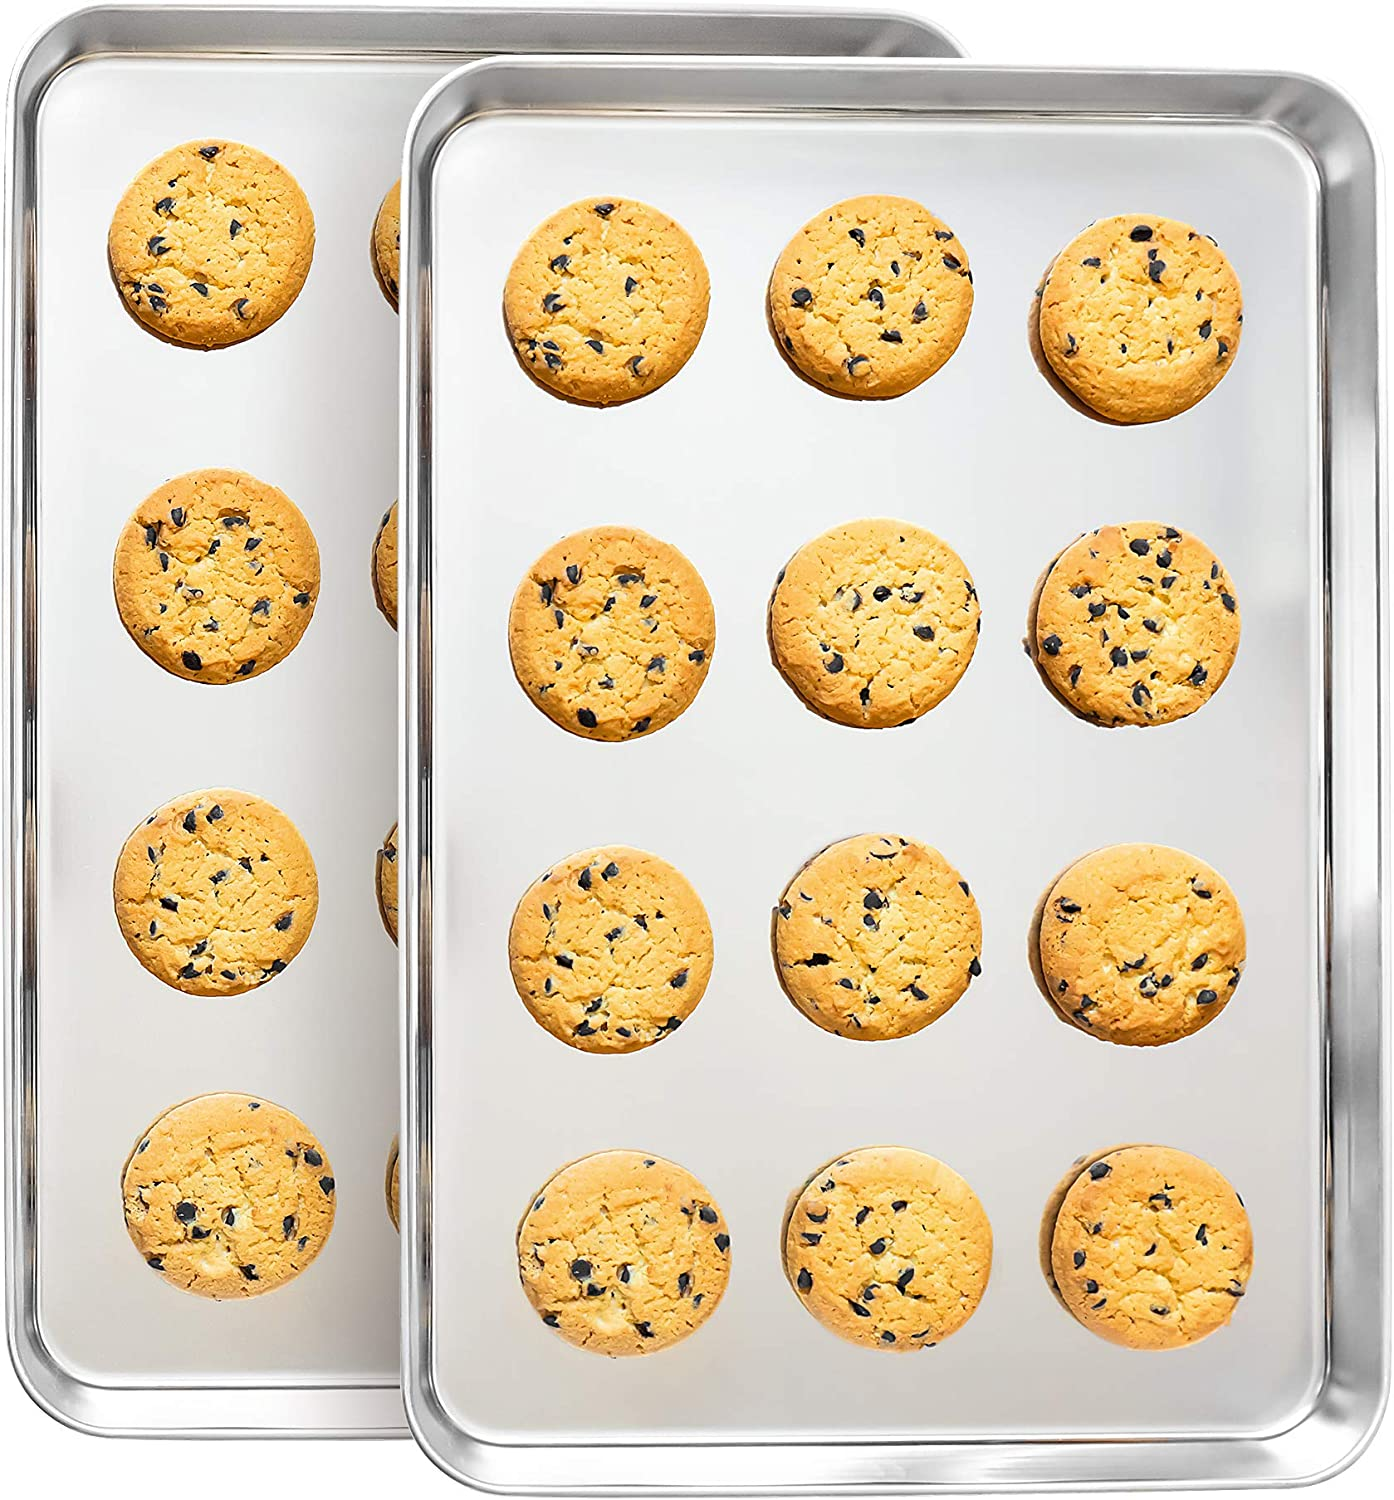 Stainless Steel Baking Trays (Set of 2) - Professional Half-Sheet Cooking, Cookie, Roast Pans - Smooth Mirror Finish, Heavy Duty, Commercial-Grade, Dishwasher-Safe // Willow & Eva